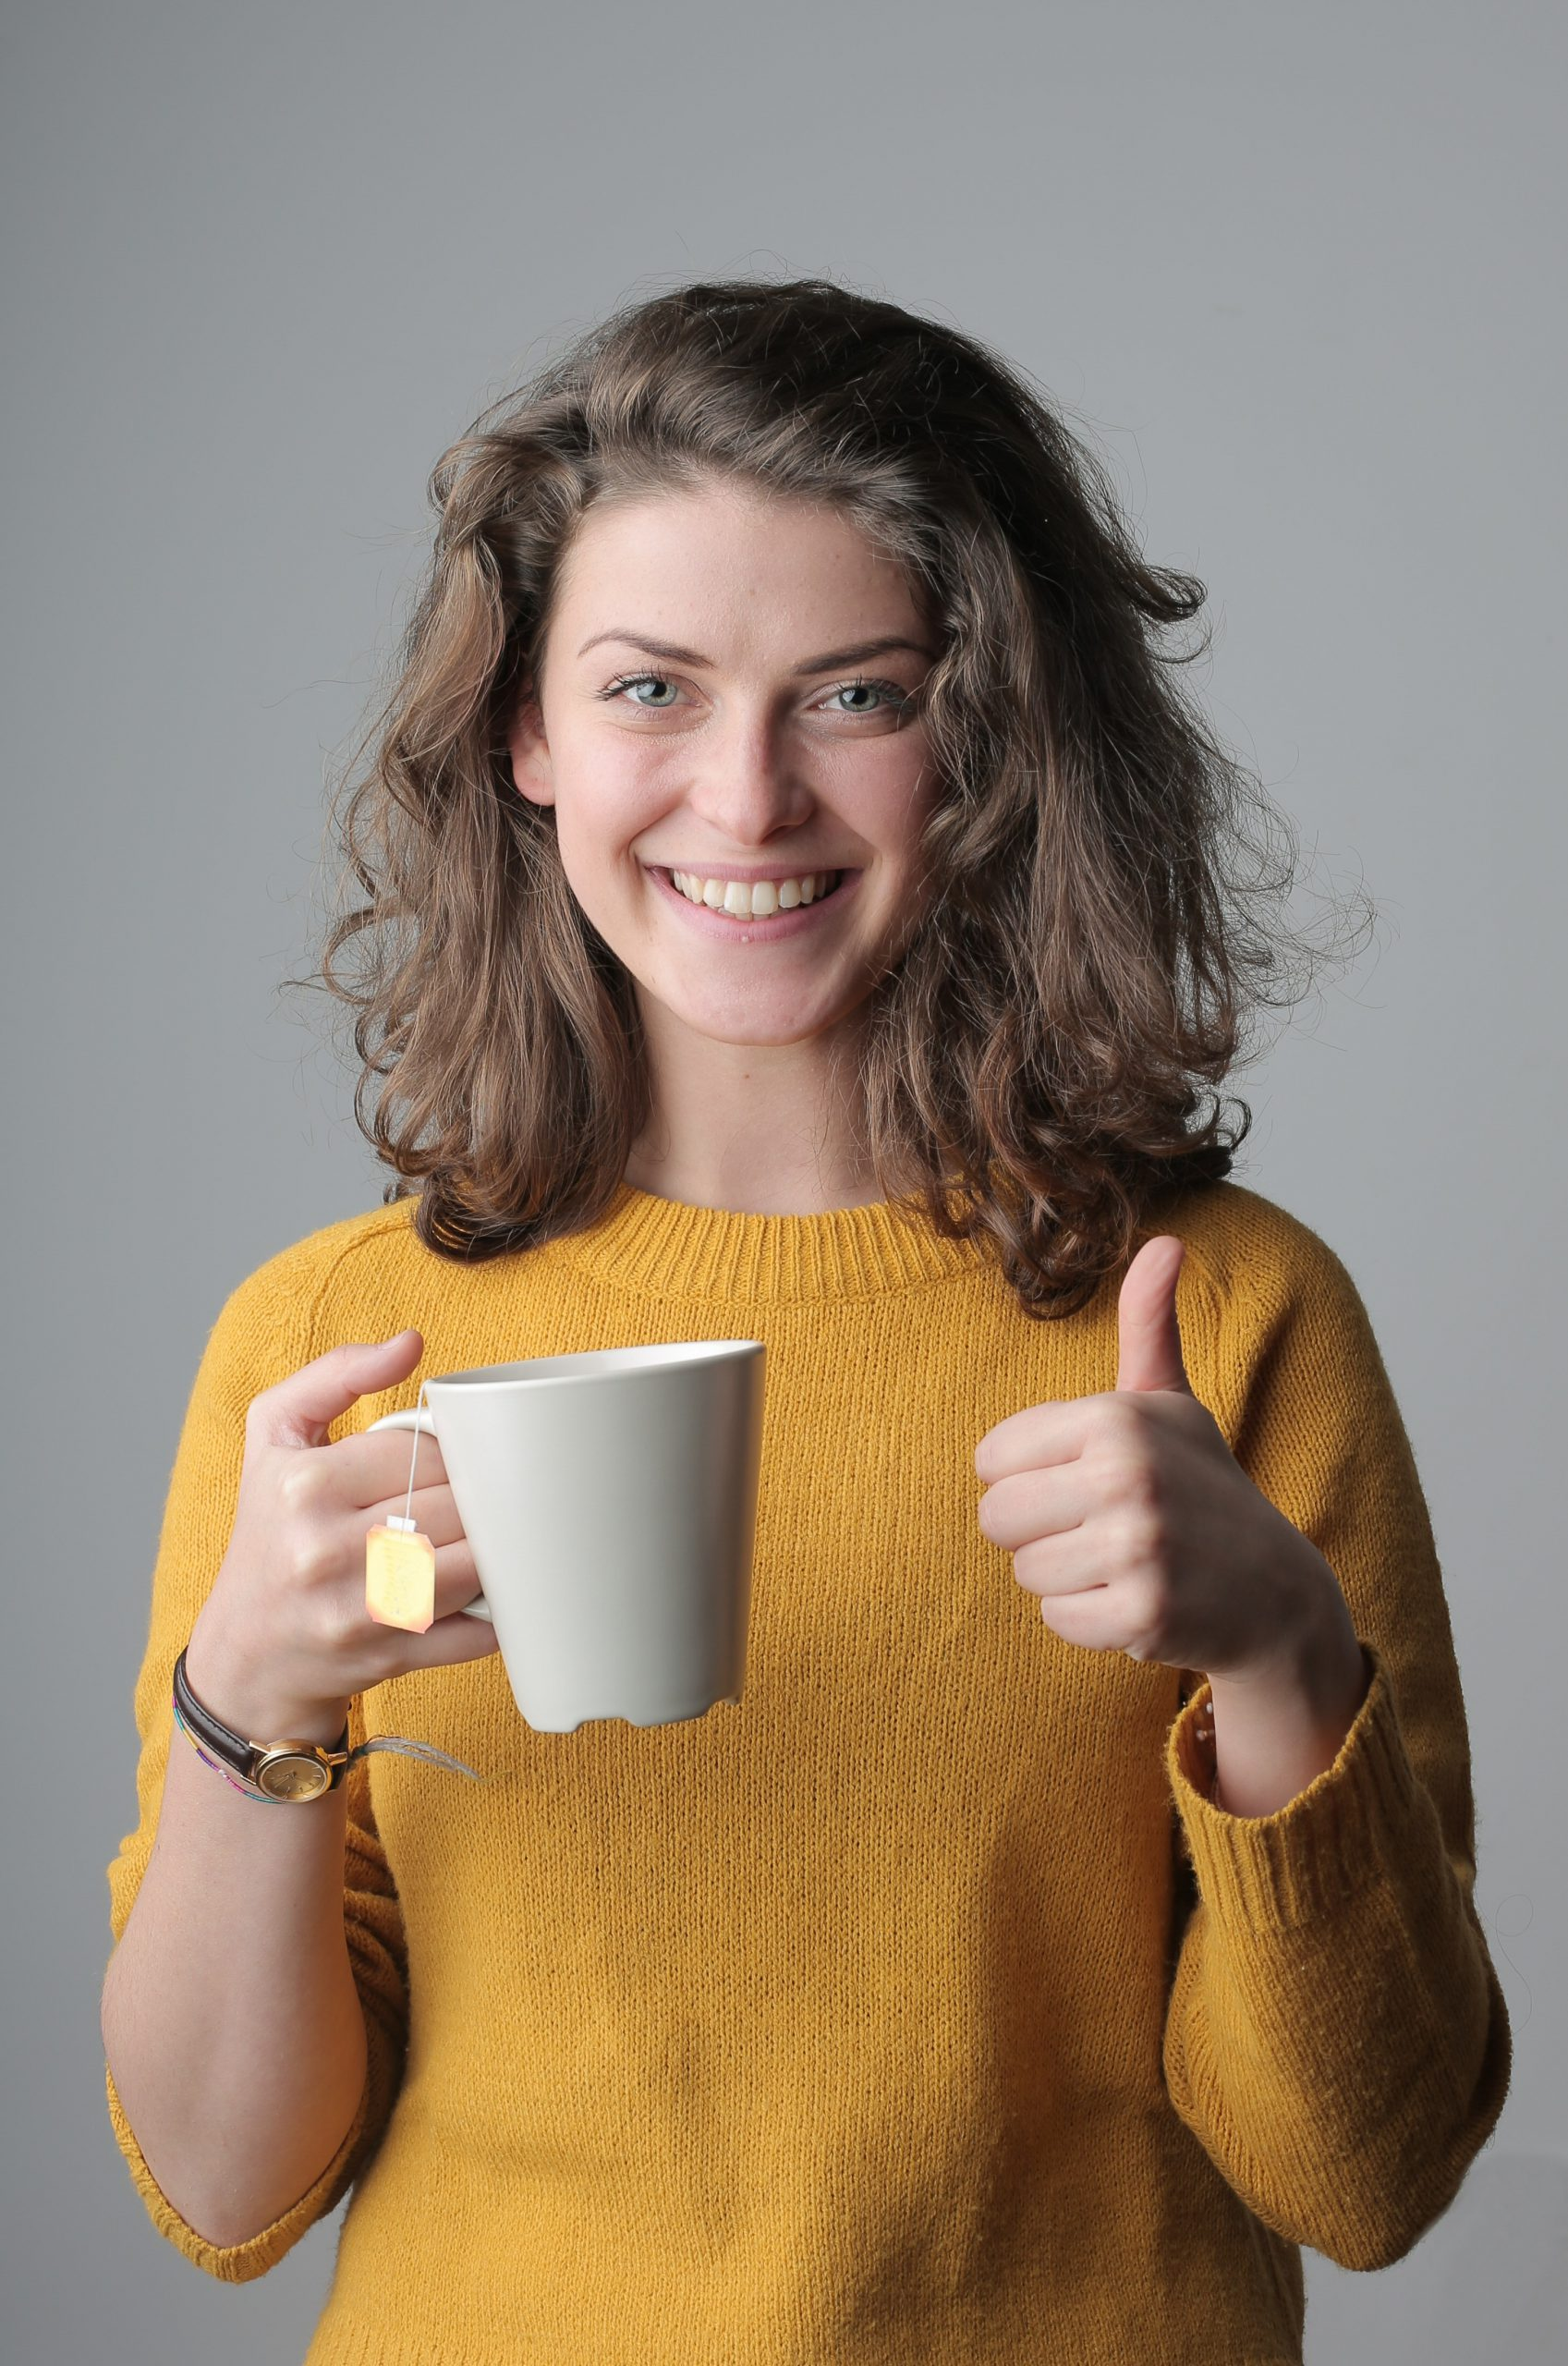 woman-in-yellow-sweater-holding-white-ceramic-mug-3979228